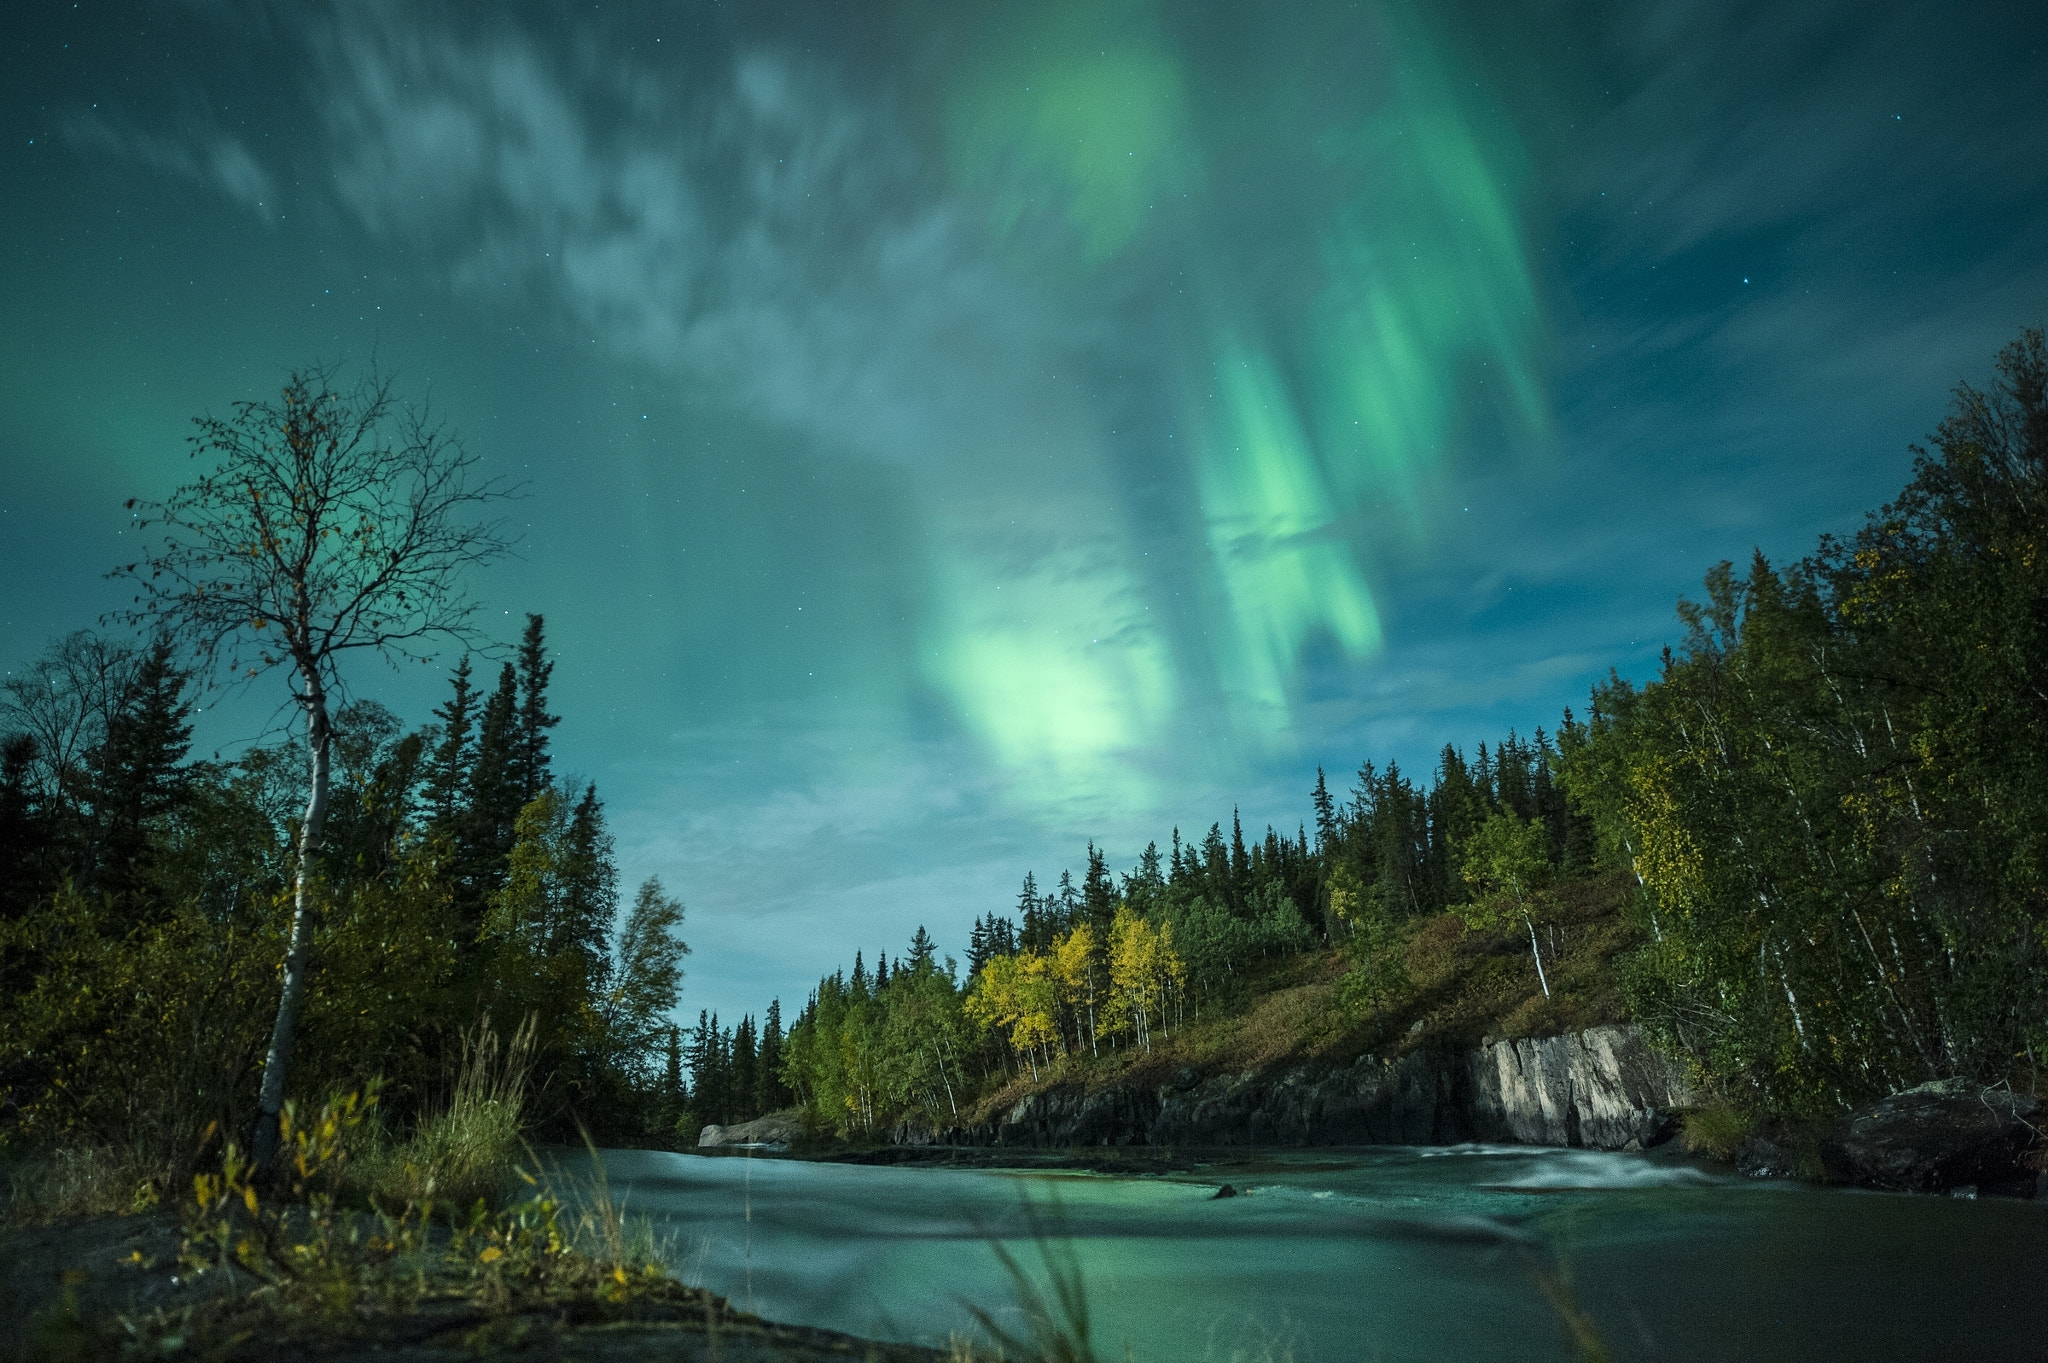 Photograph Northern Lights by Michael Ericsson on 500px